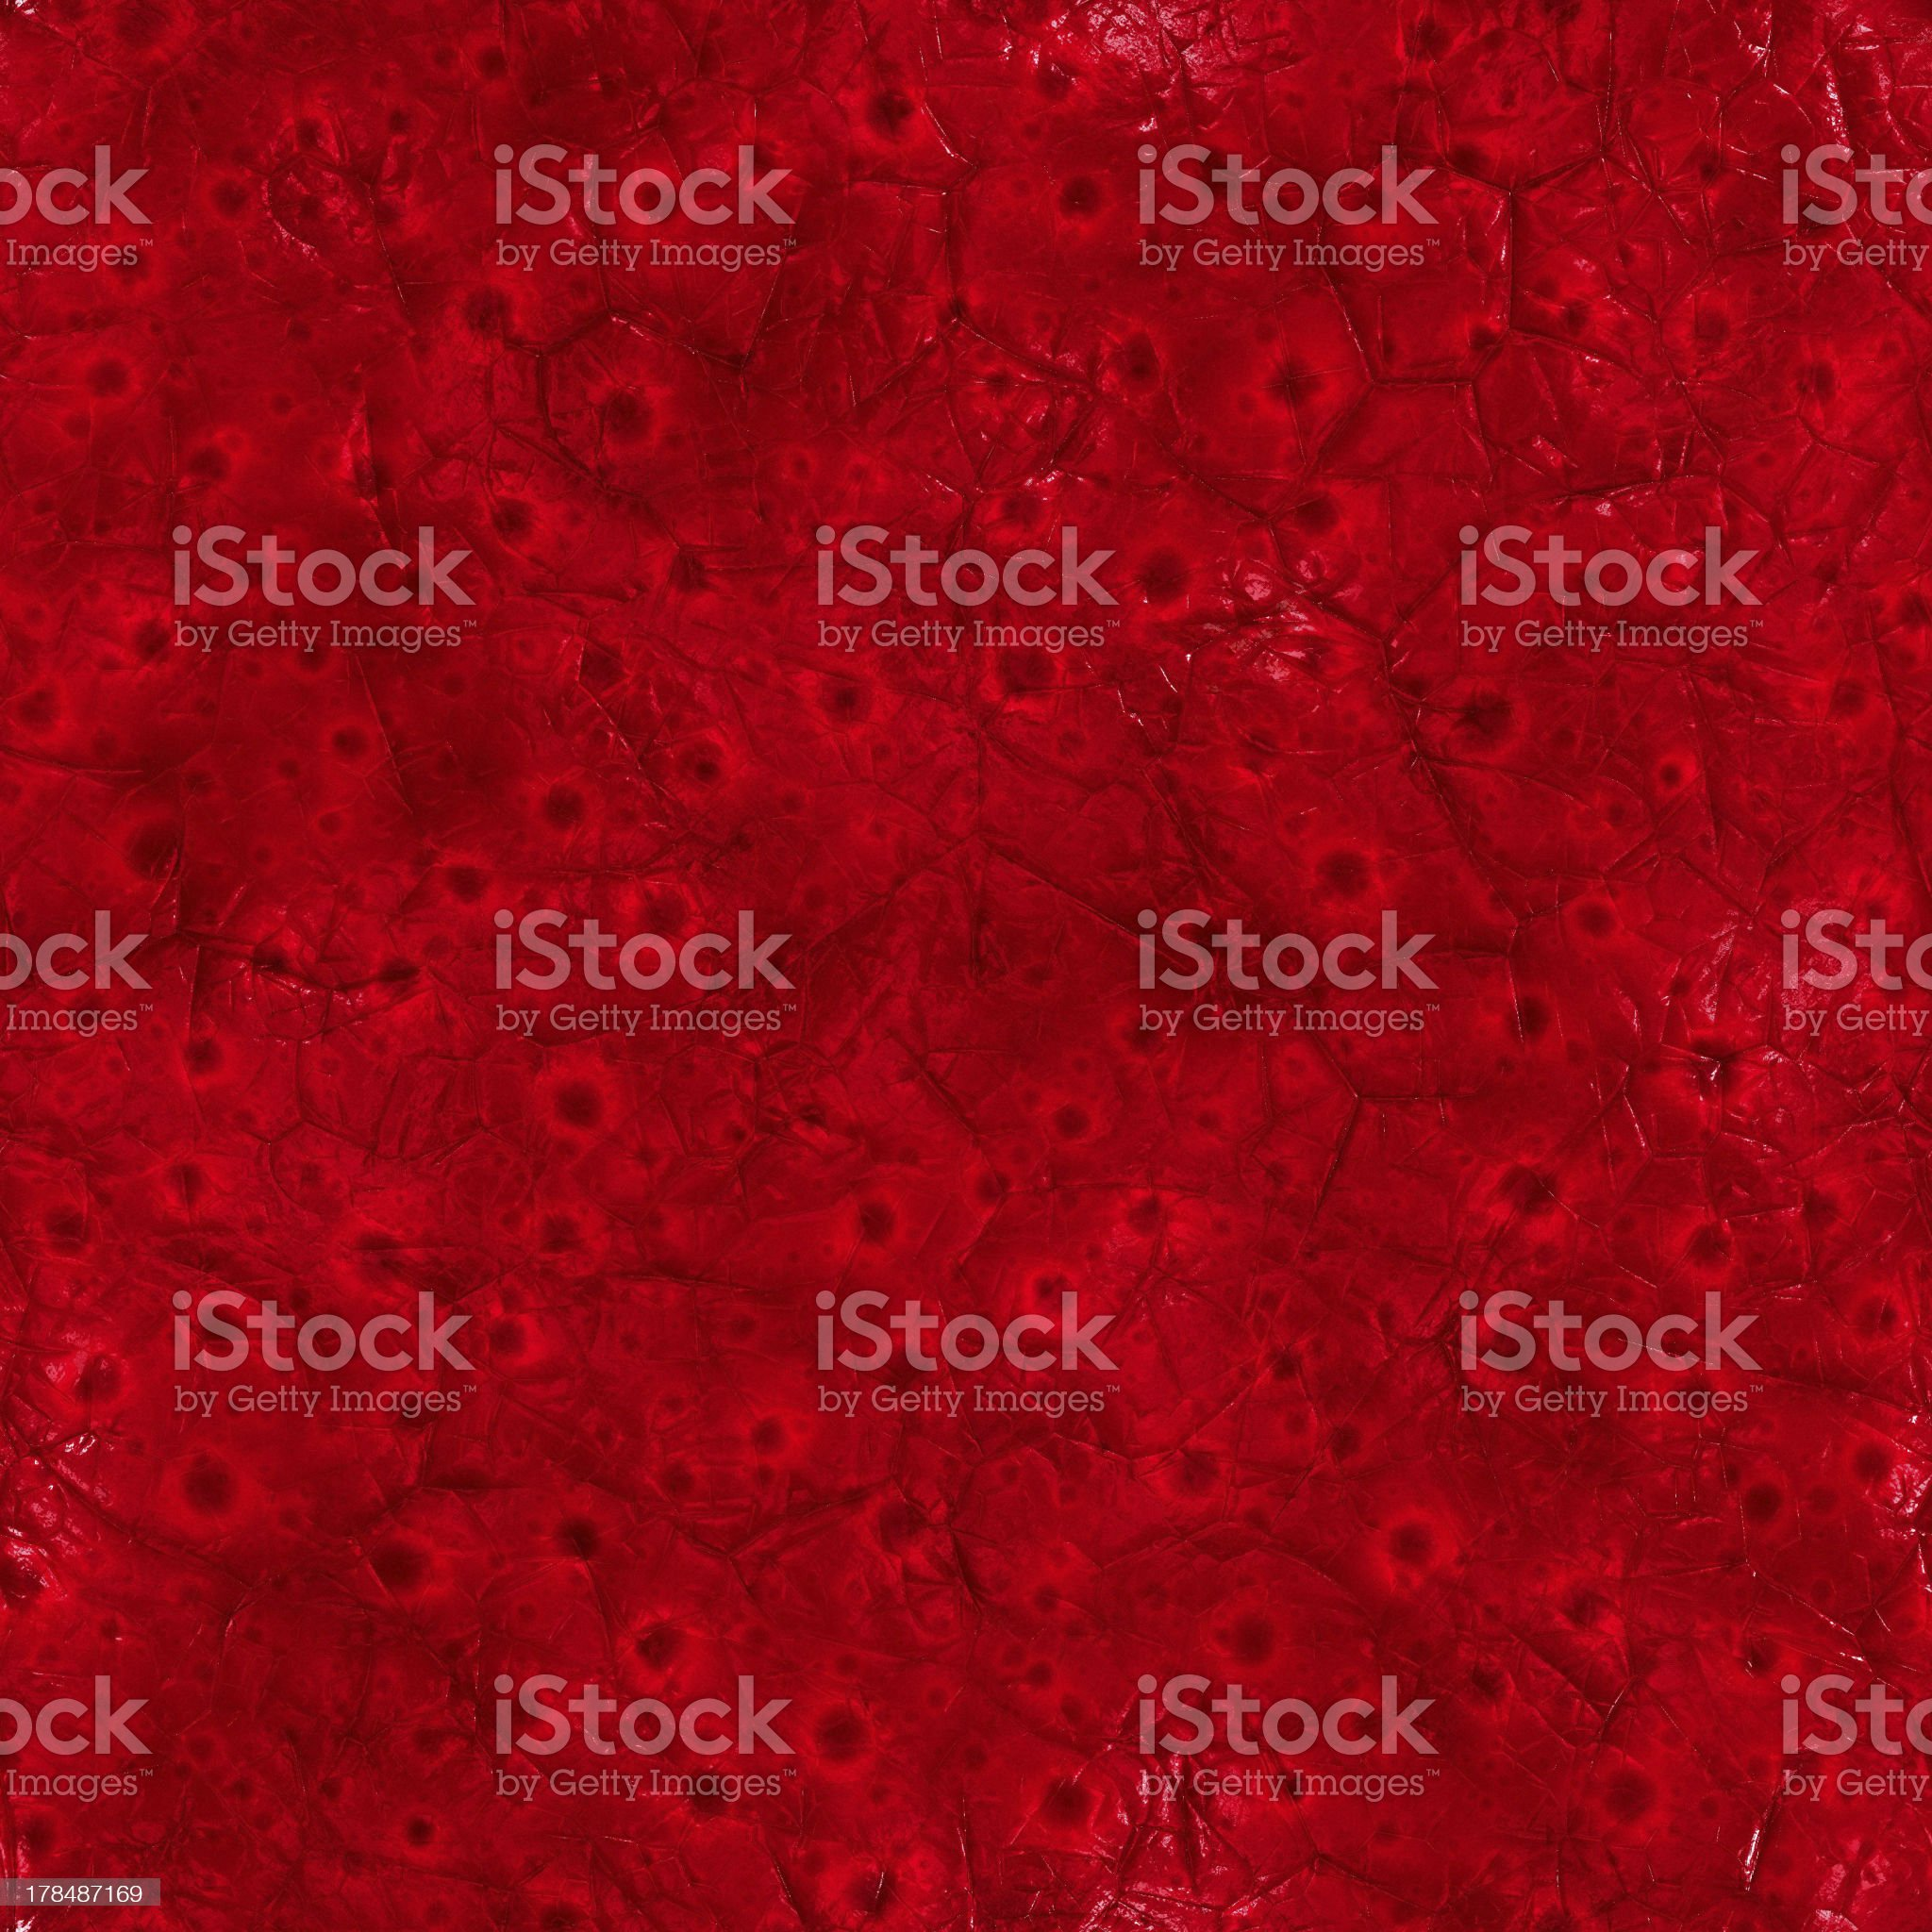 Inside body (Seamless texture) royalty-free stock photo